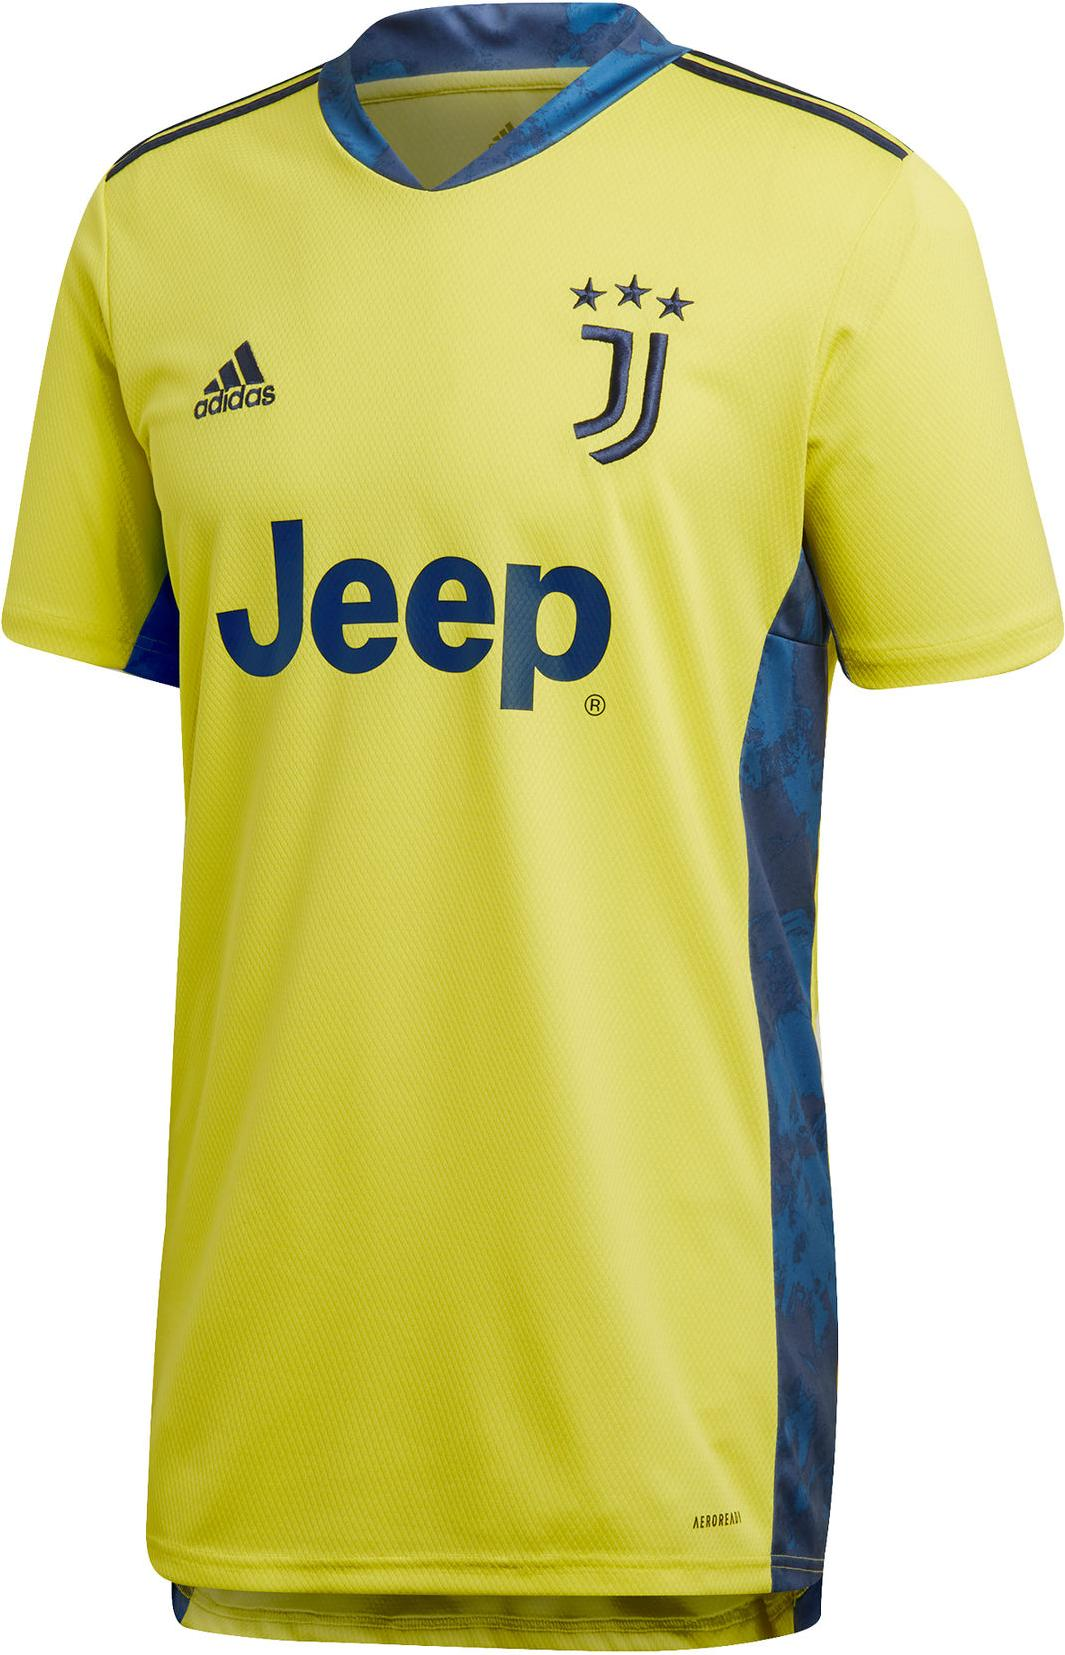 Shirt Adidas 20 21 Juventus Gk Jersey Shortsleeve Top4football Com